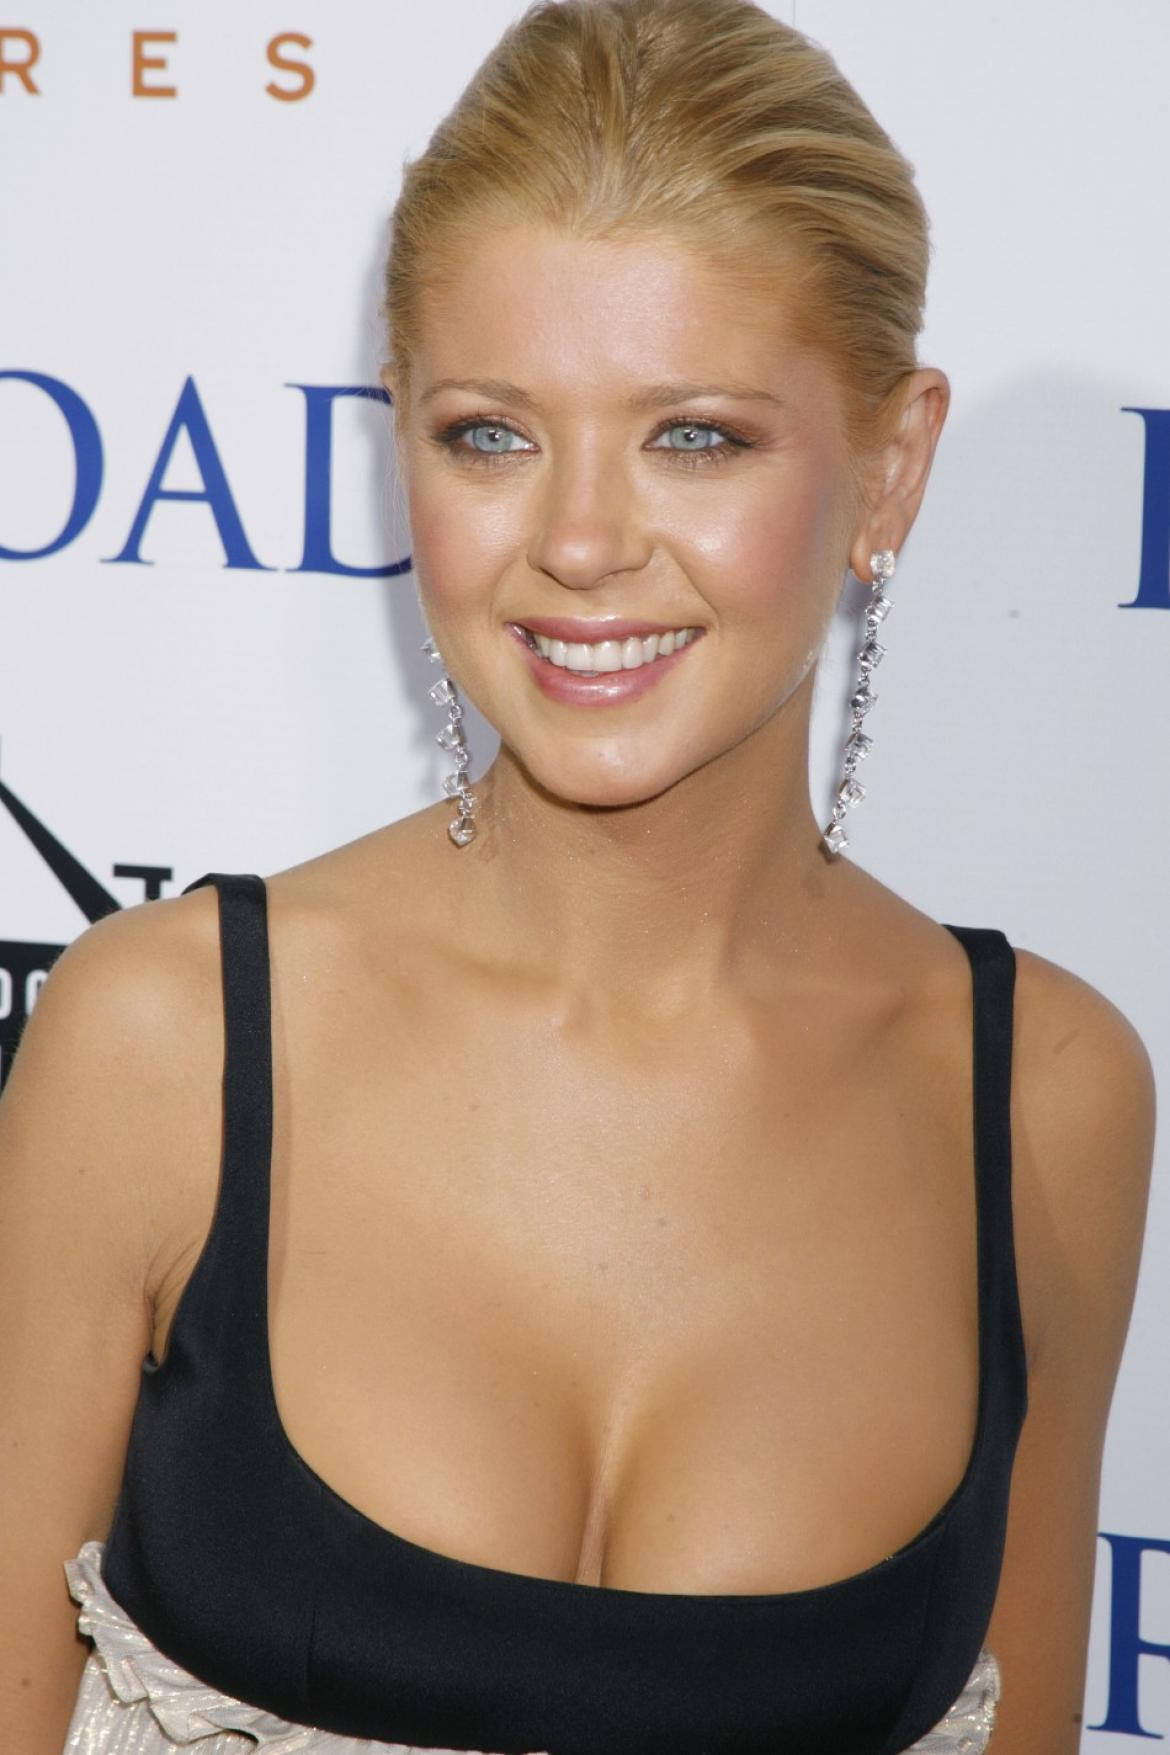 Tara Reid - Her Religion - Her Hobbies - Her Political Views